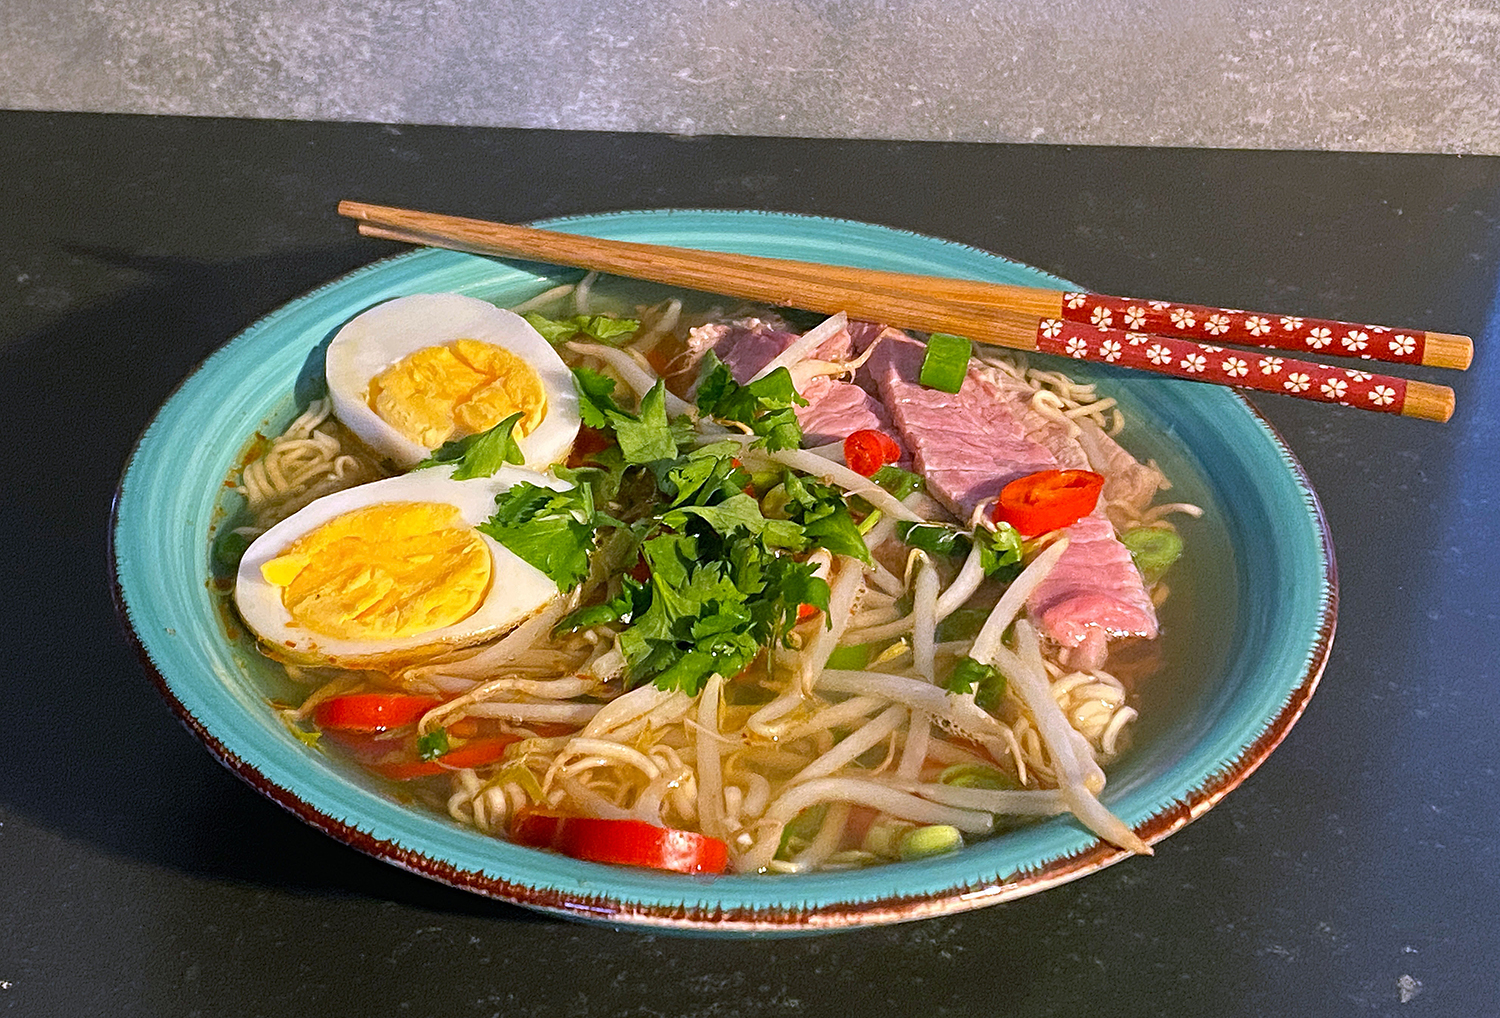 Noodlesoup with fresh vegetables and beef